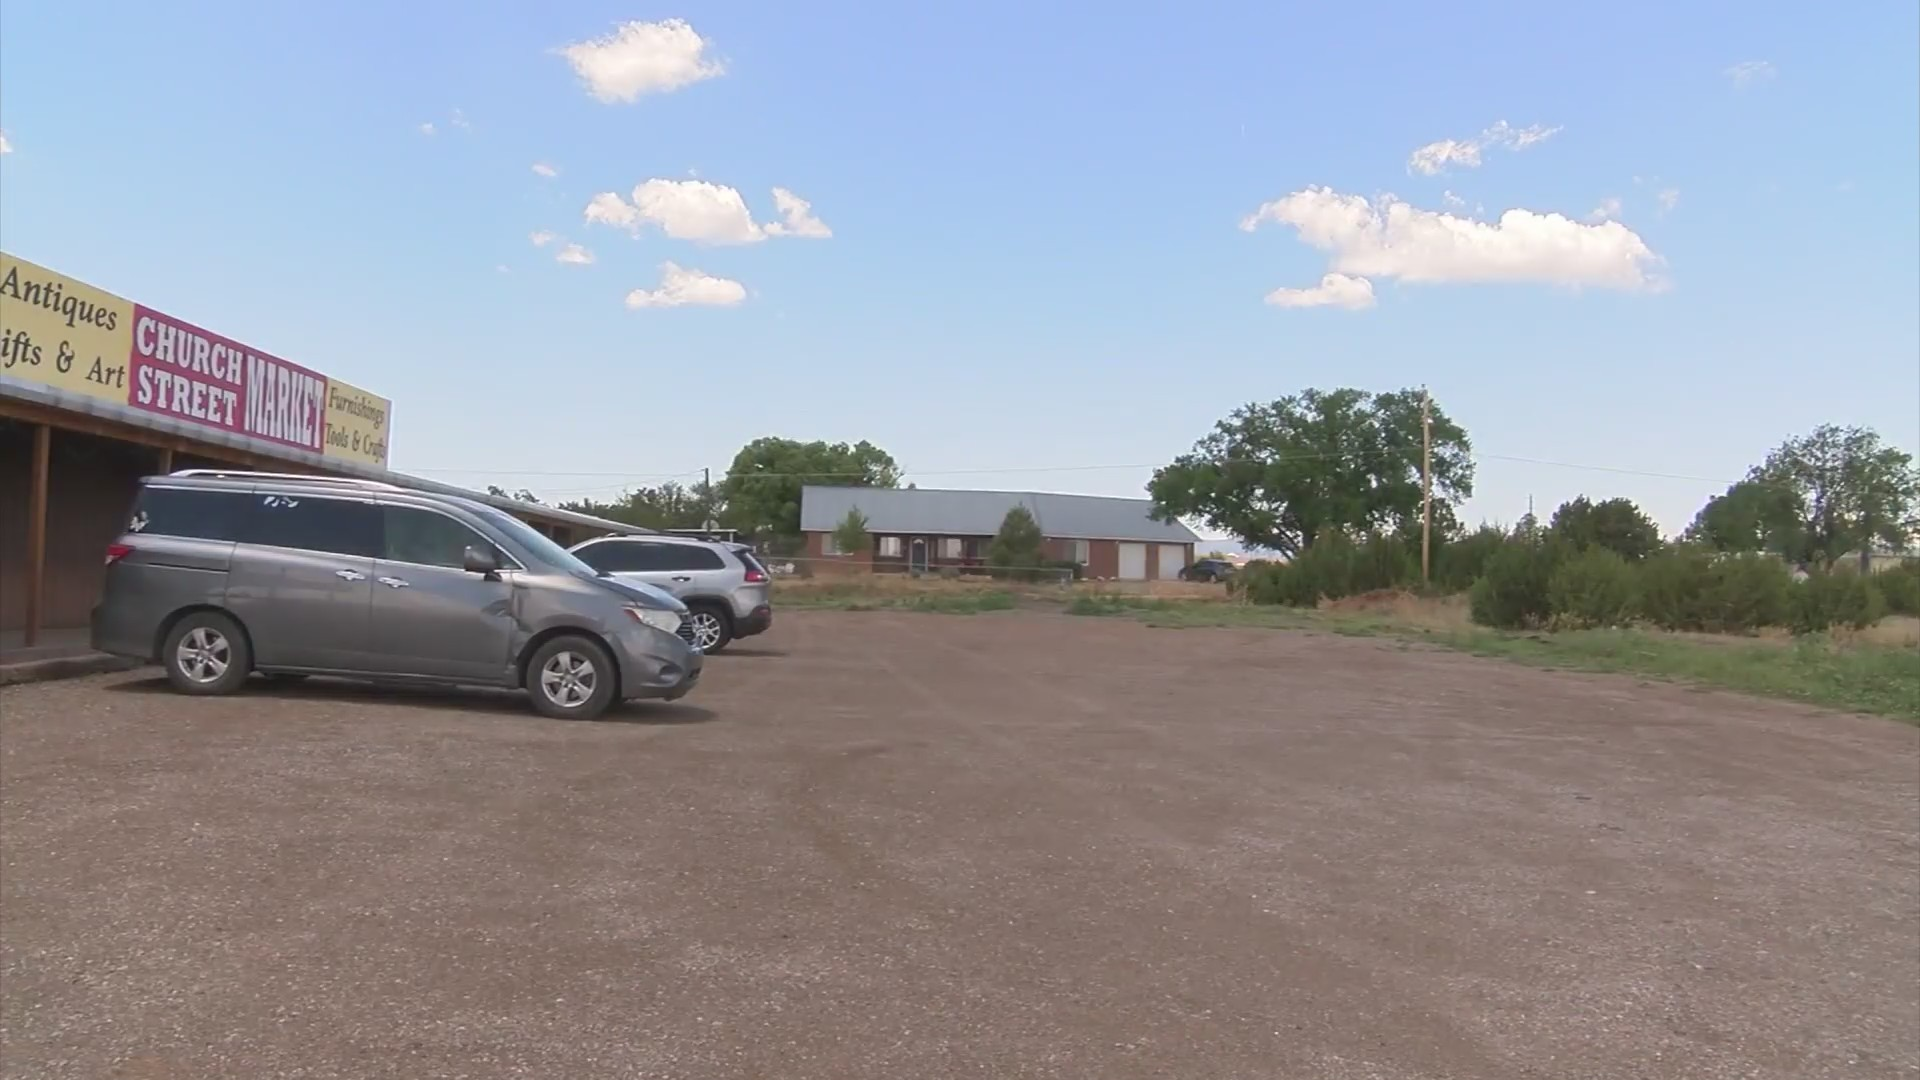 Edgewood Launches Drive In Movie Theatre Krqe News 13